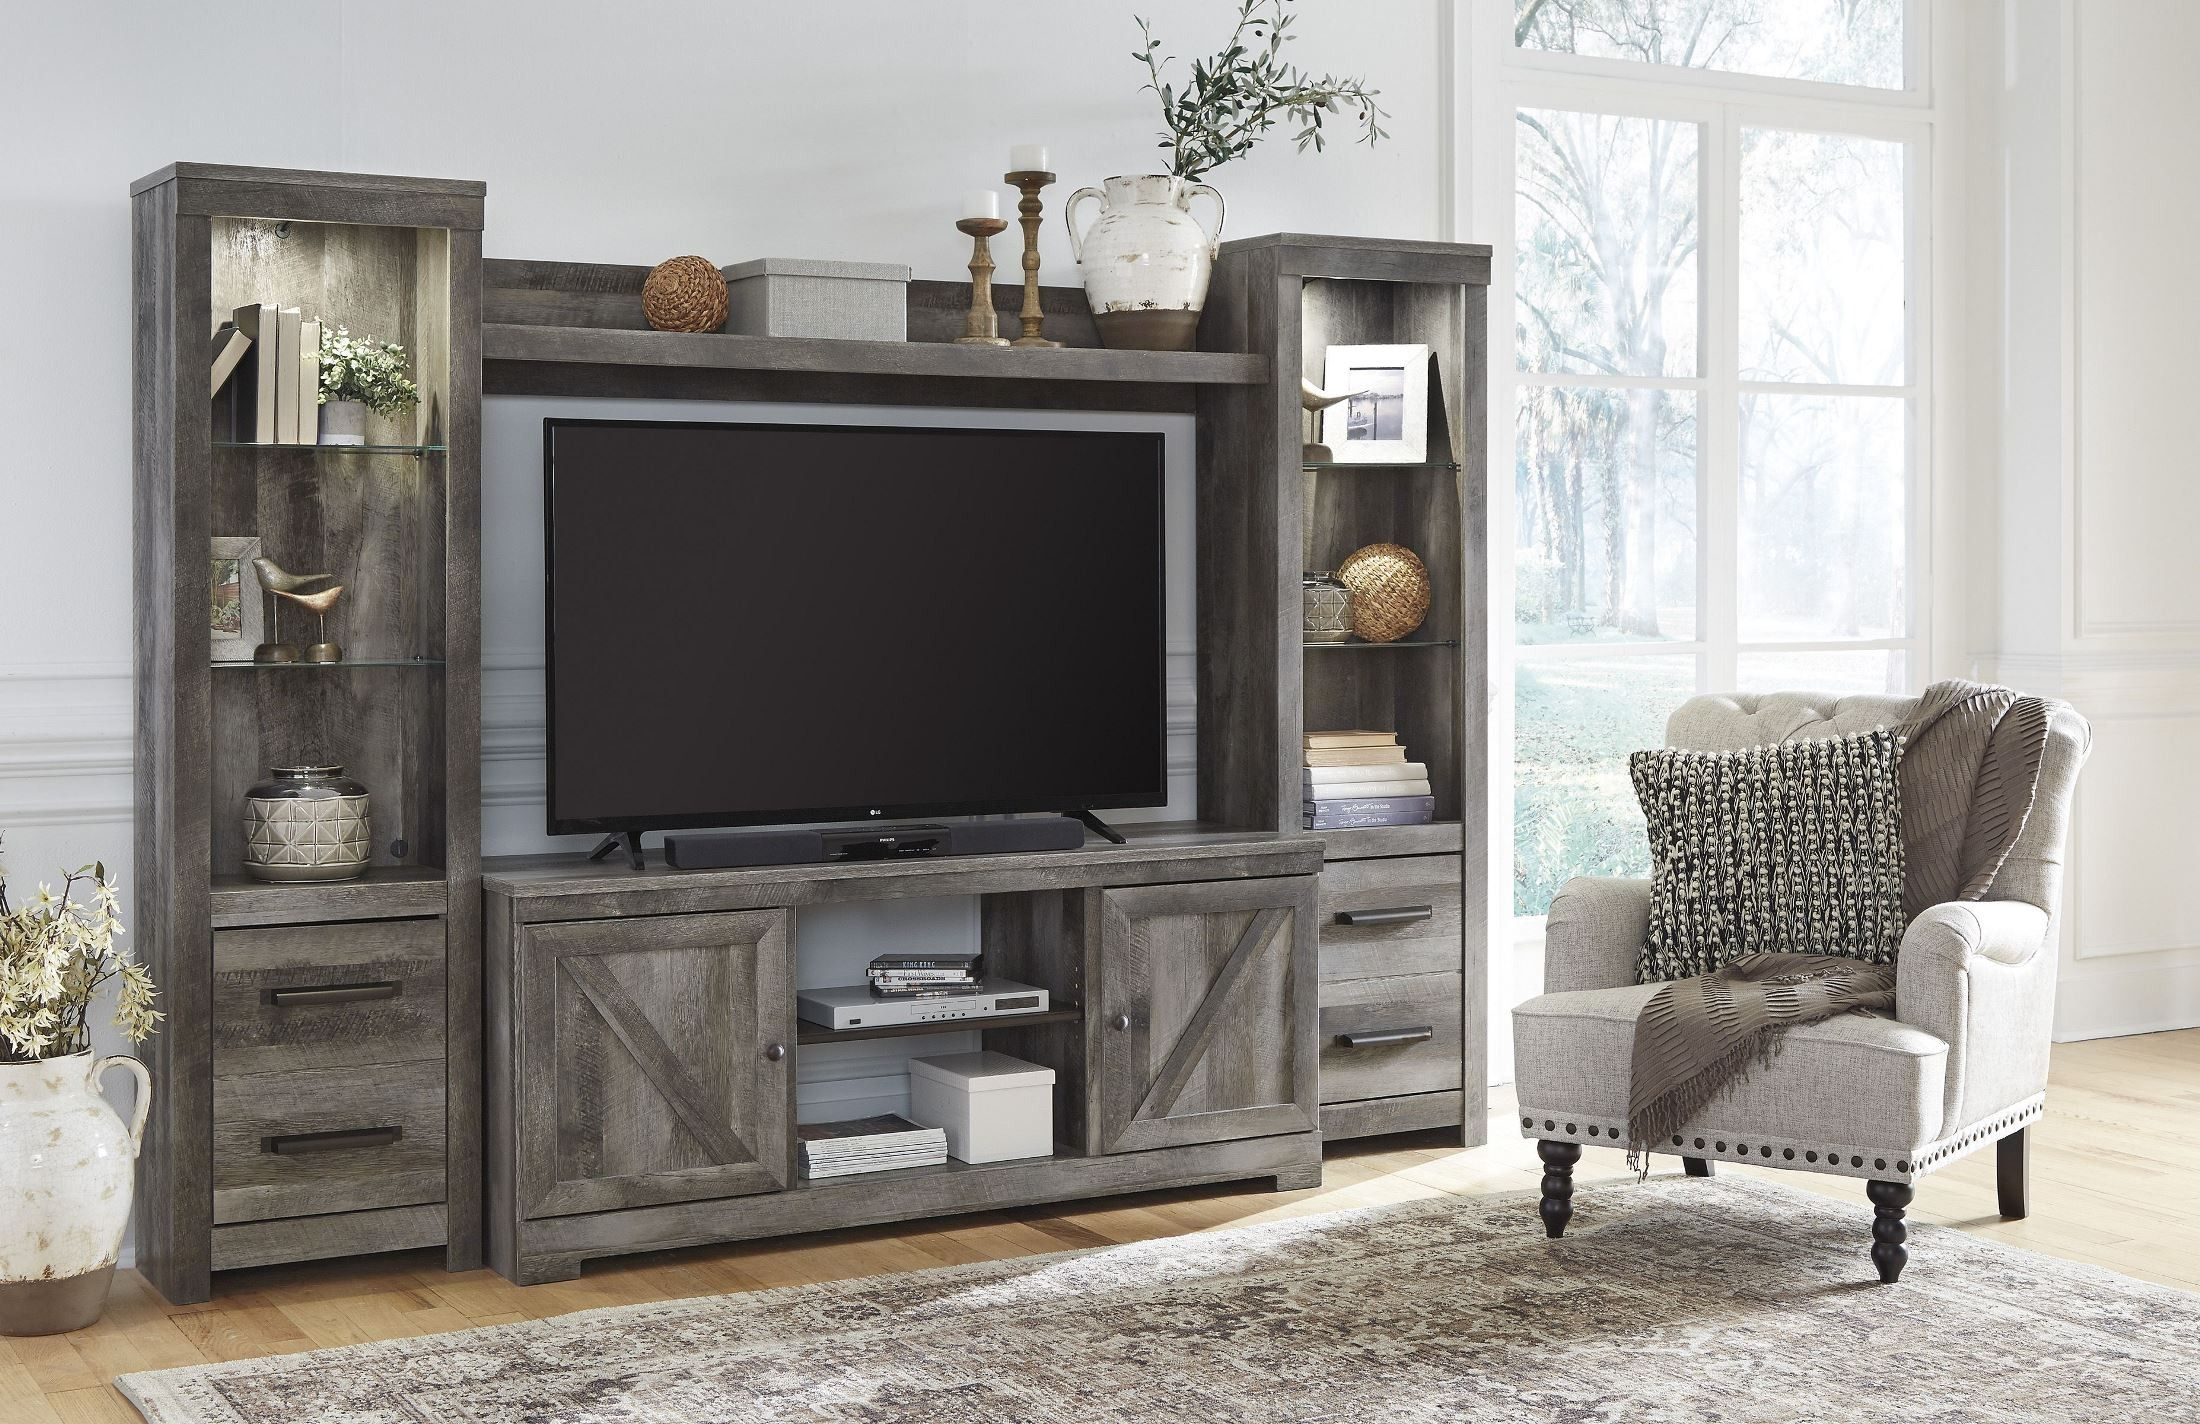 Wynnlow Gray Entertainment Wall Unit Fireplace Entertainment